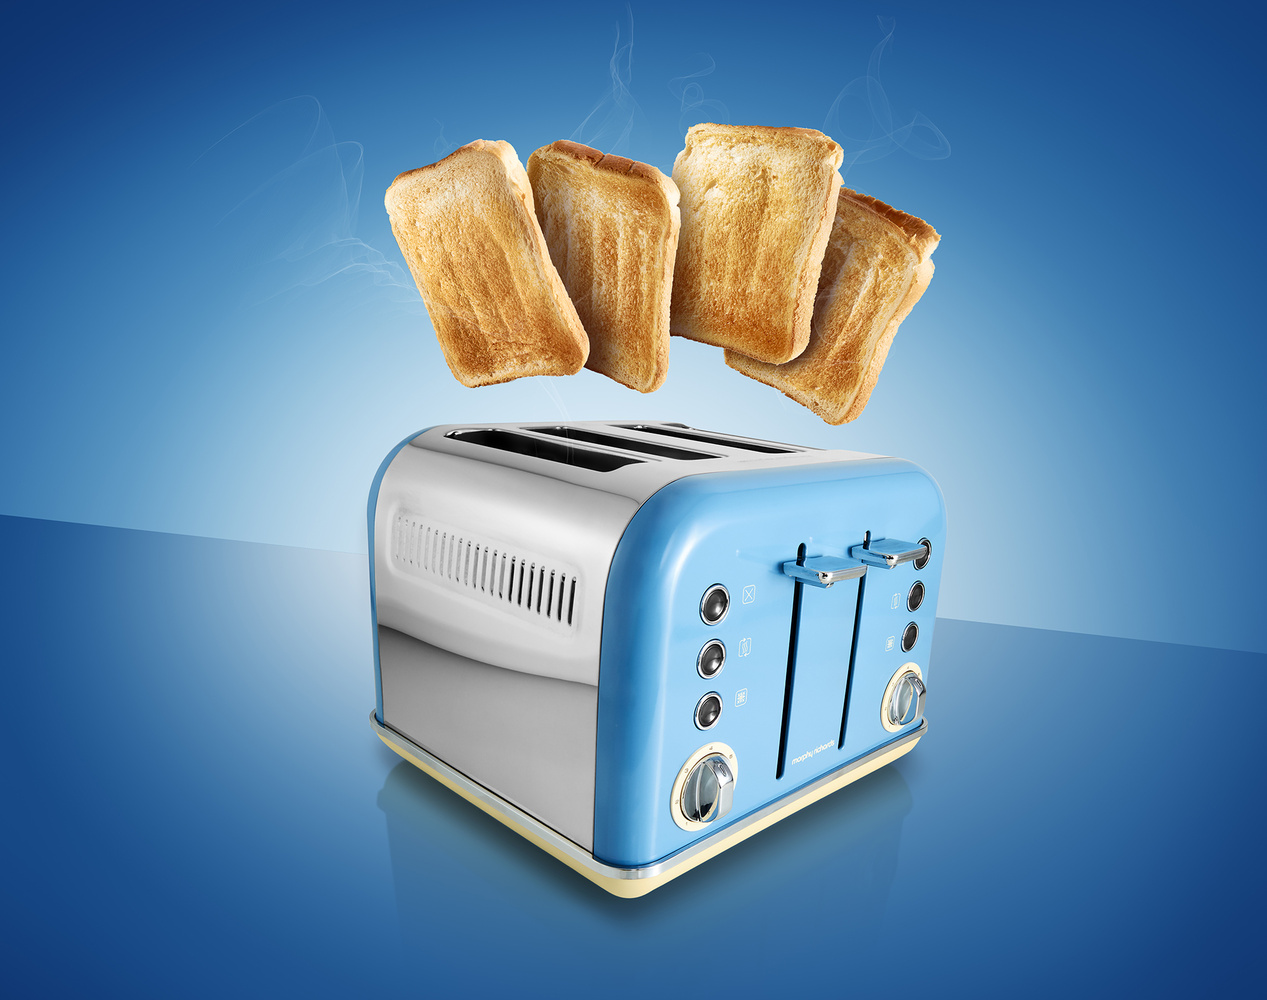 It's Toast Time by Ian Knaggs